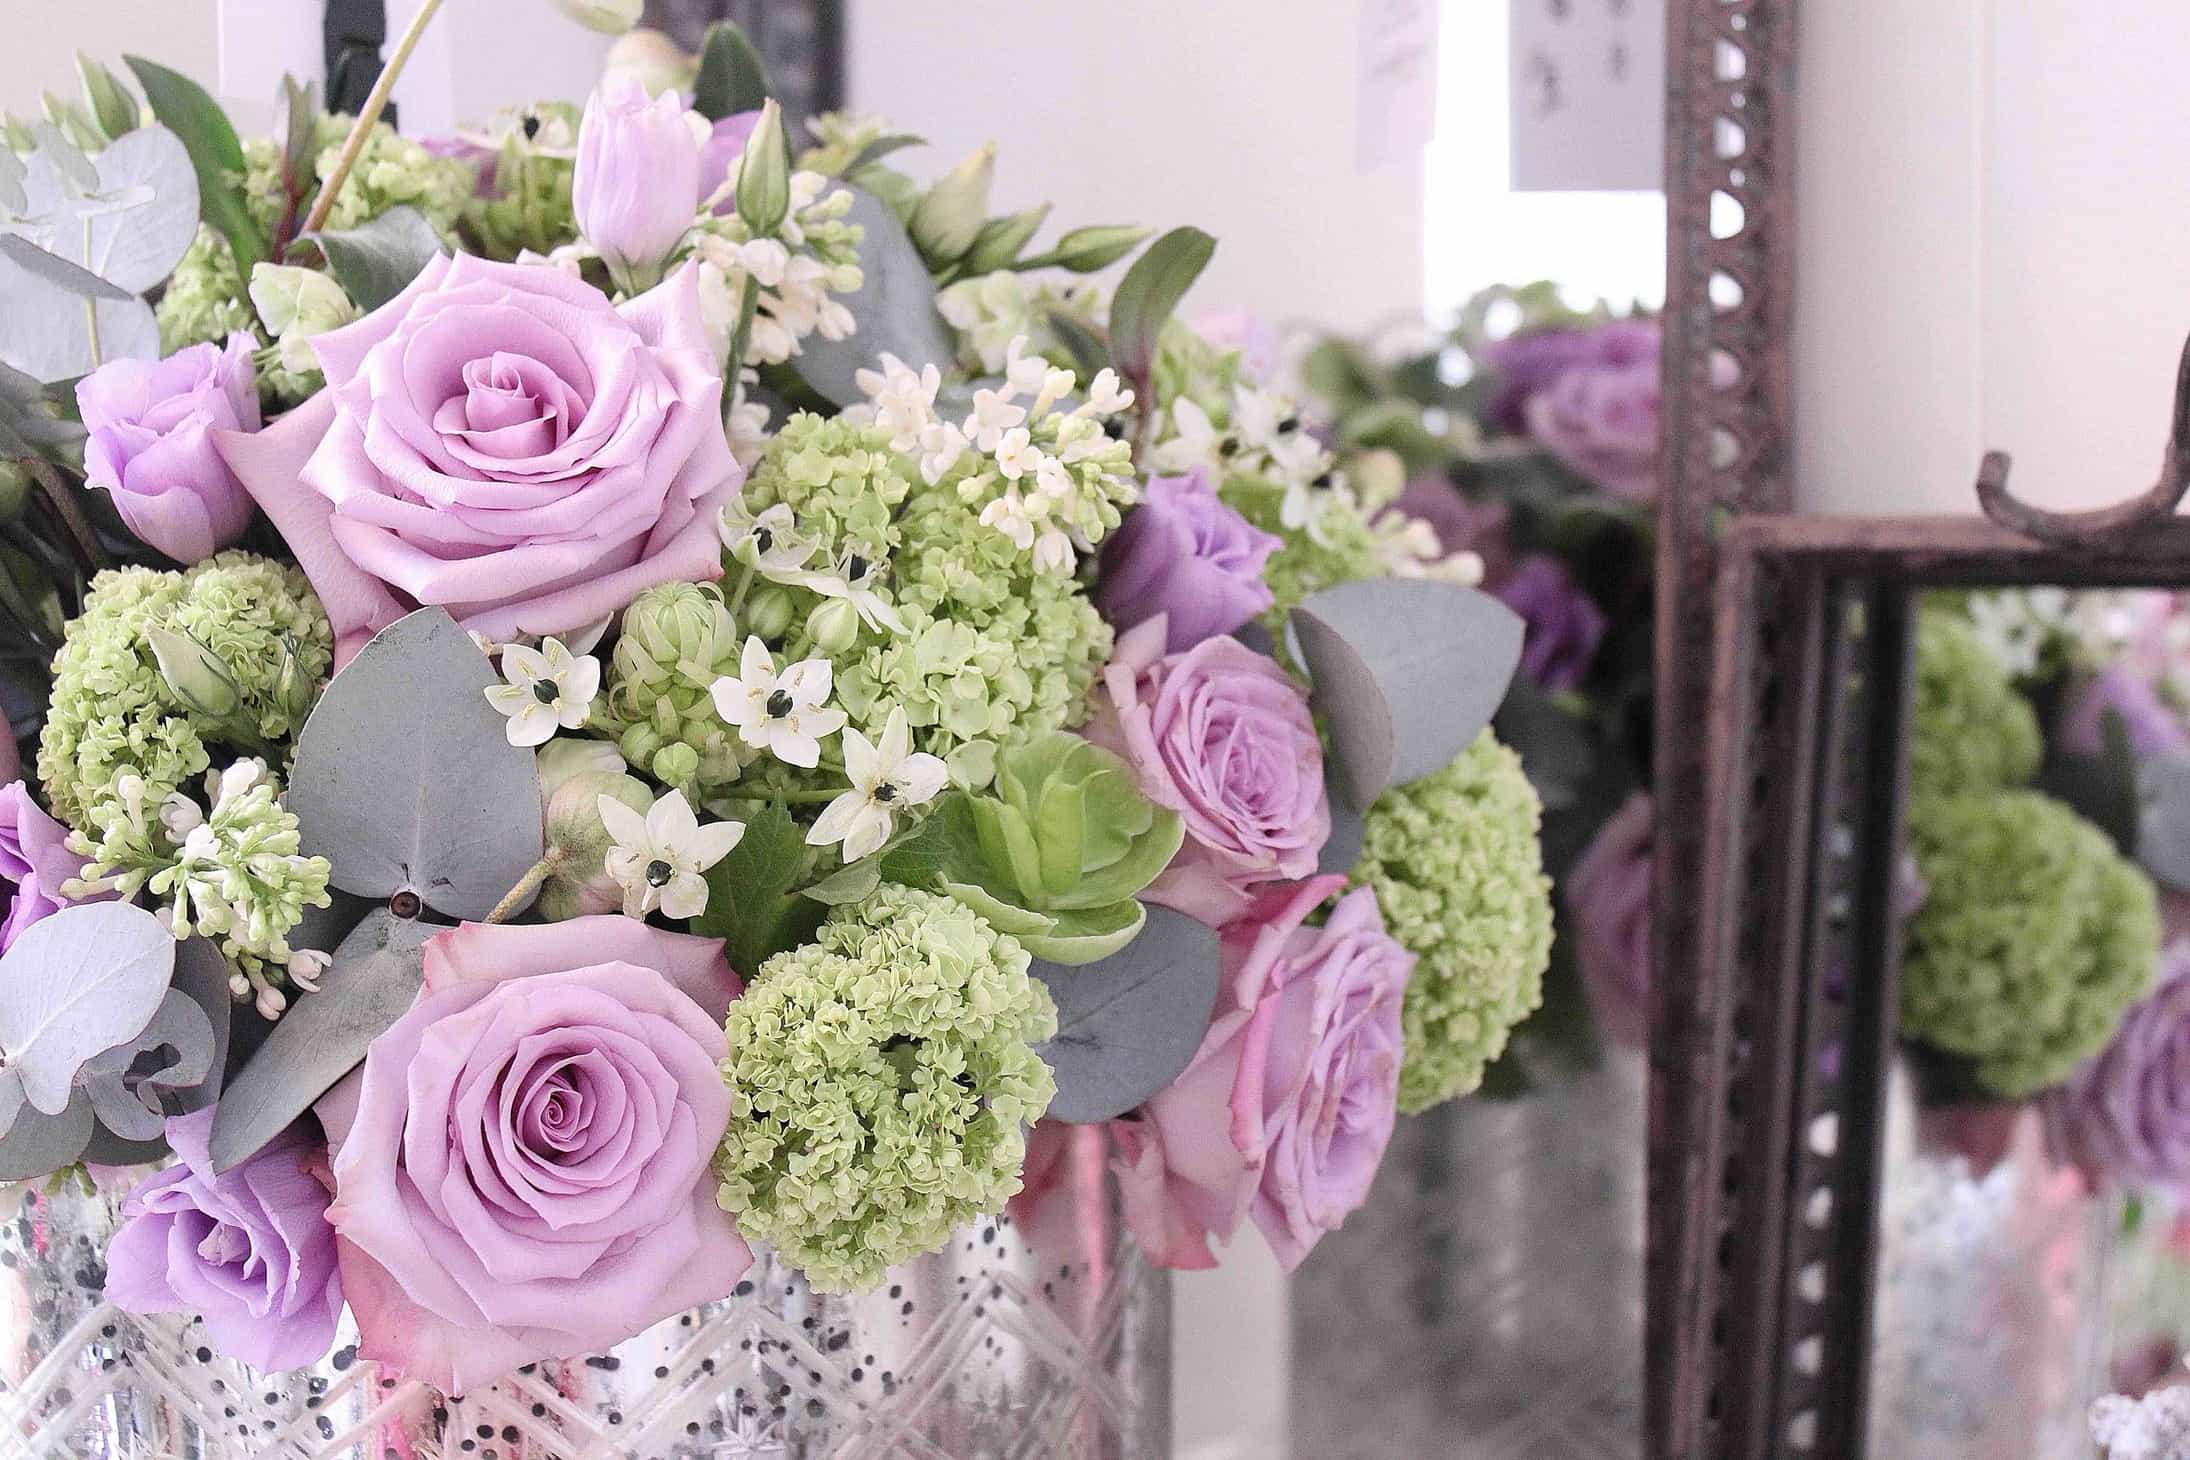 Lavender Green flowers, The house of rose, pink roses, 46 Fulham Road, London, SW3 6HH,  FLAGSHIP STORE IN SOUTH KENSINGTON, The smell of roses